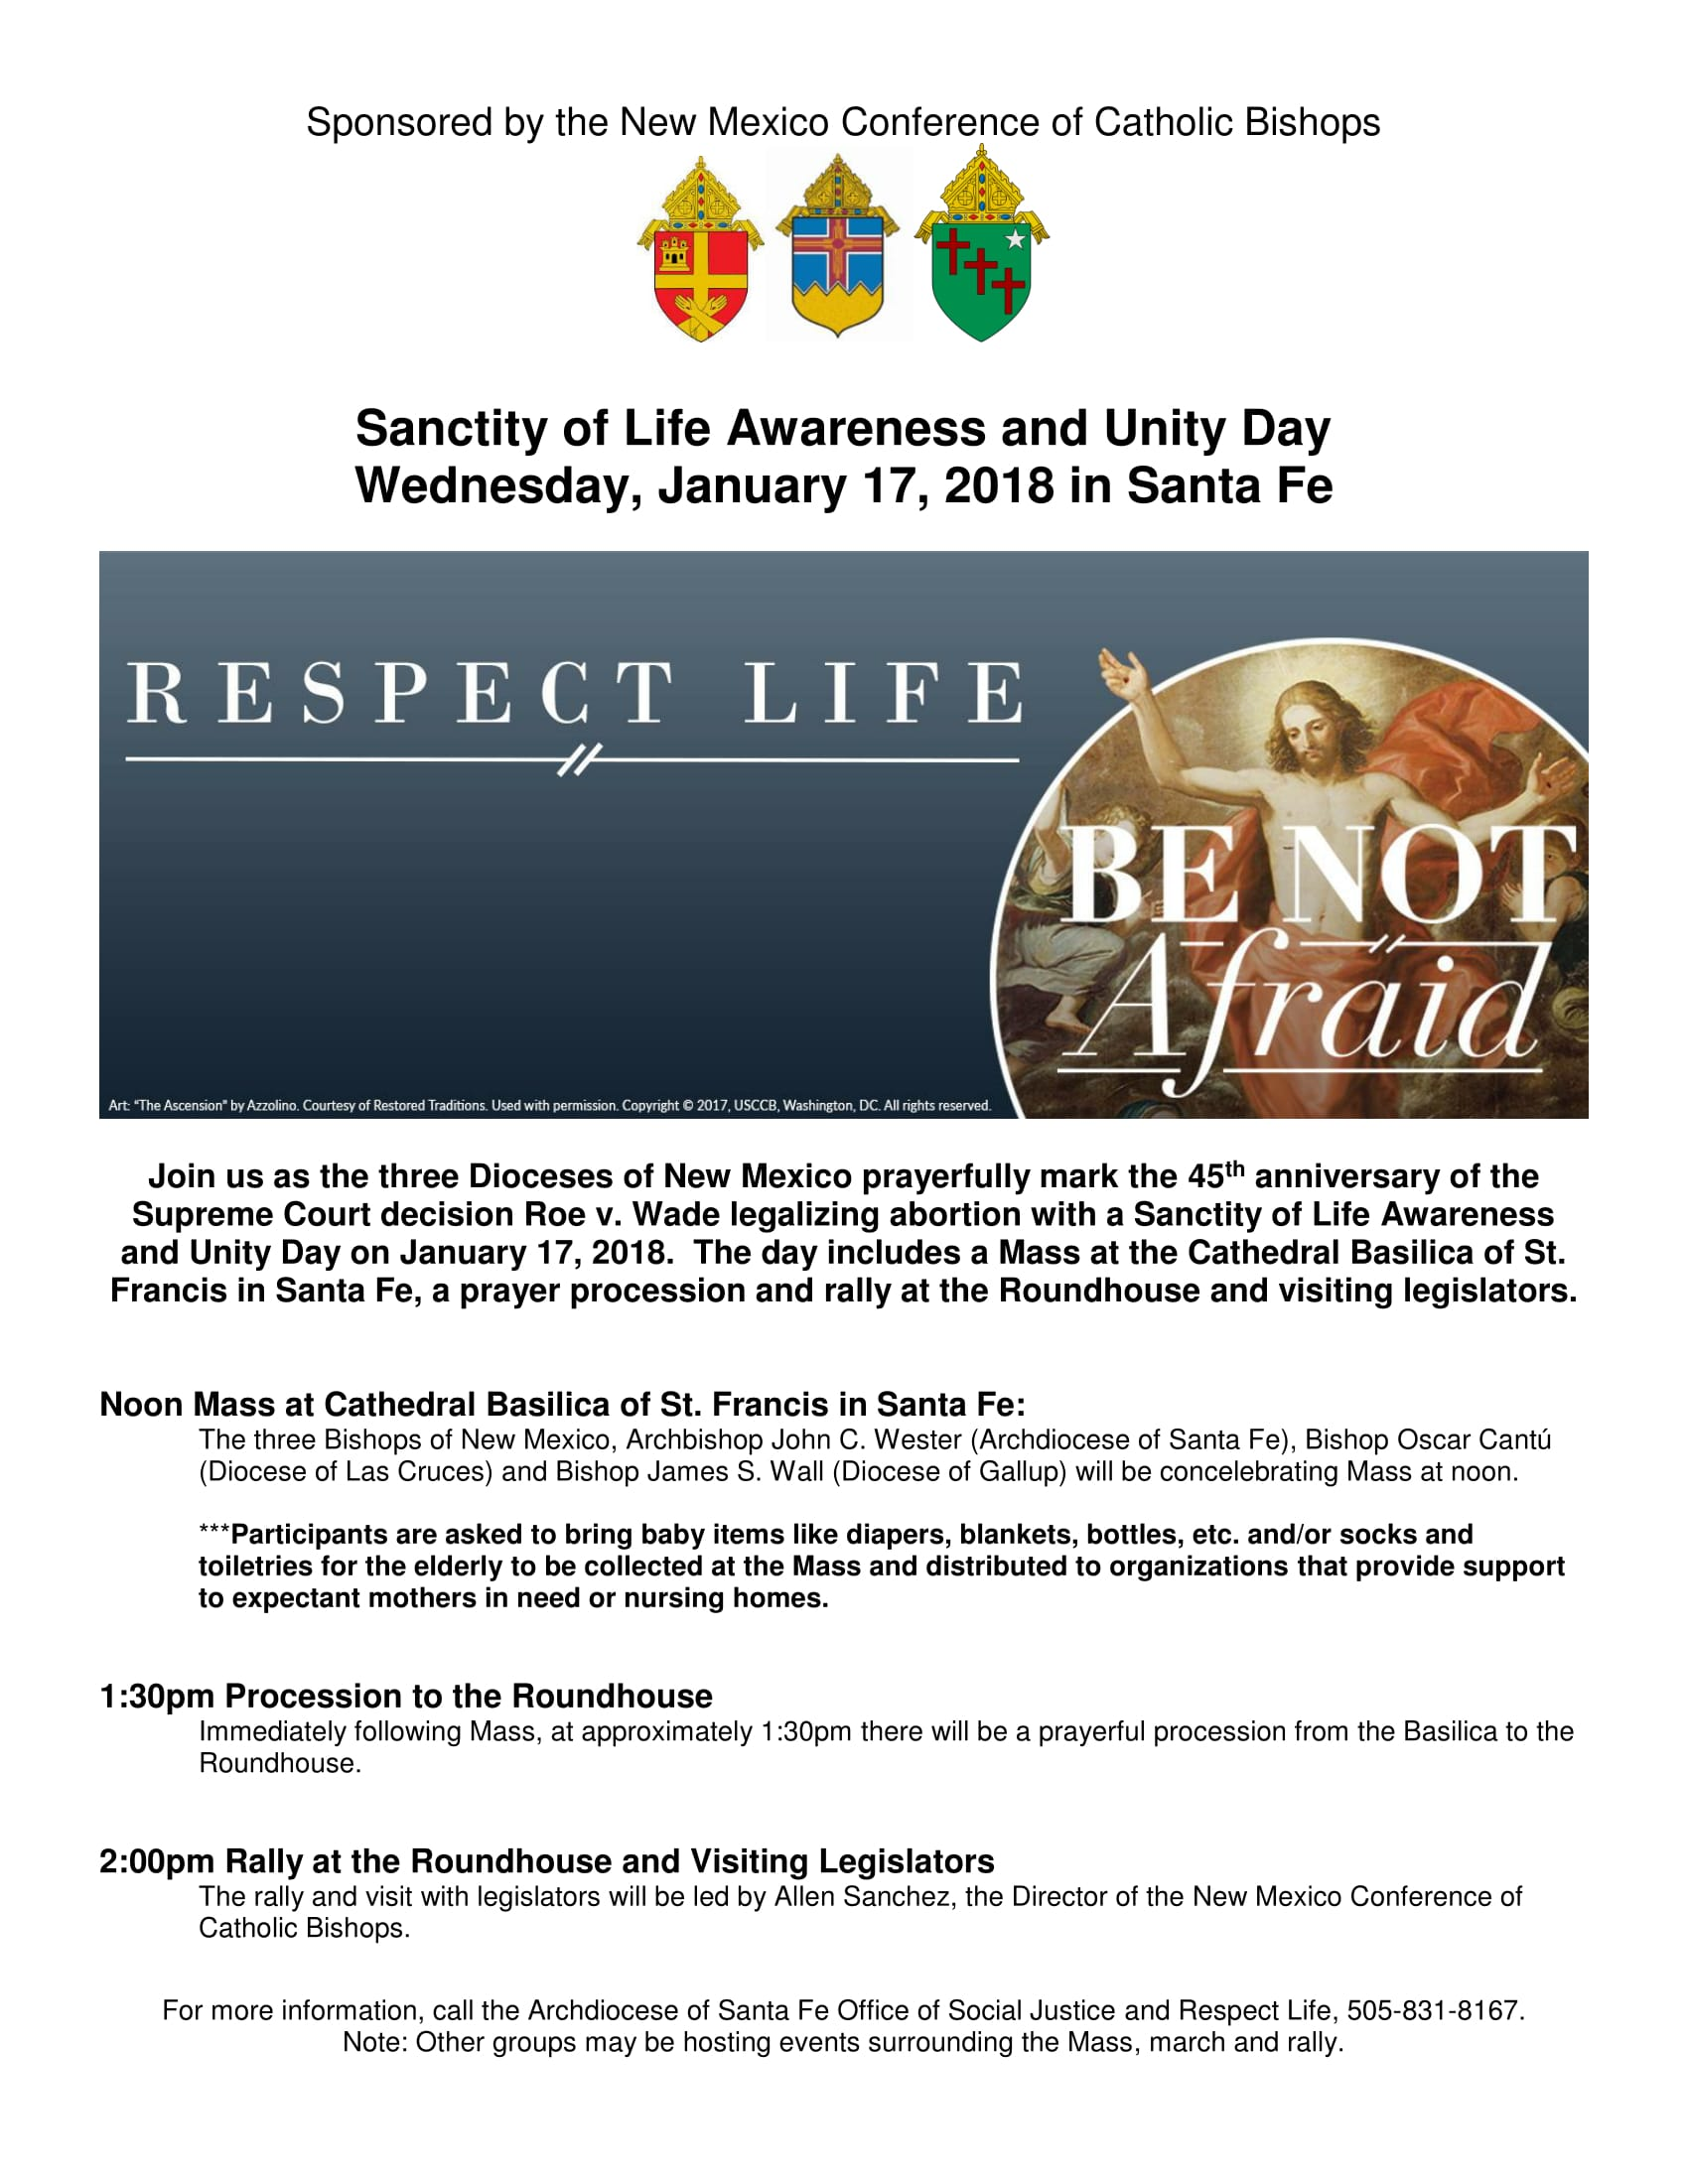 Sanctity of Life Awareness and Unity Day Mass/March/Rally